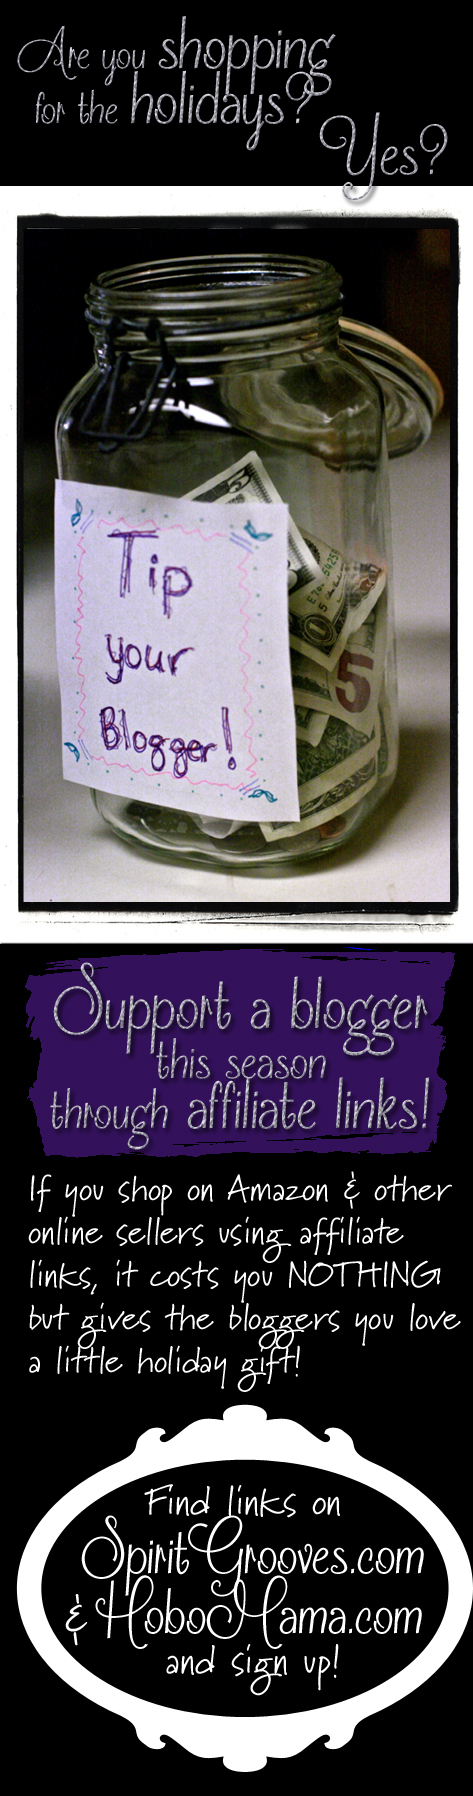 Shopping this holiday season? Do it through a blogger's affiliate link! -- SpiritGrooves & Hobo Mama